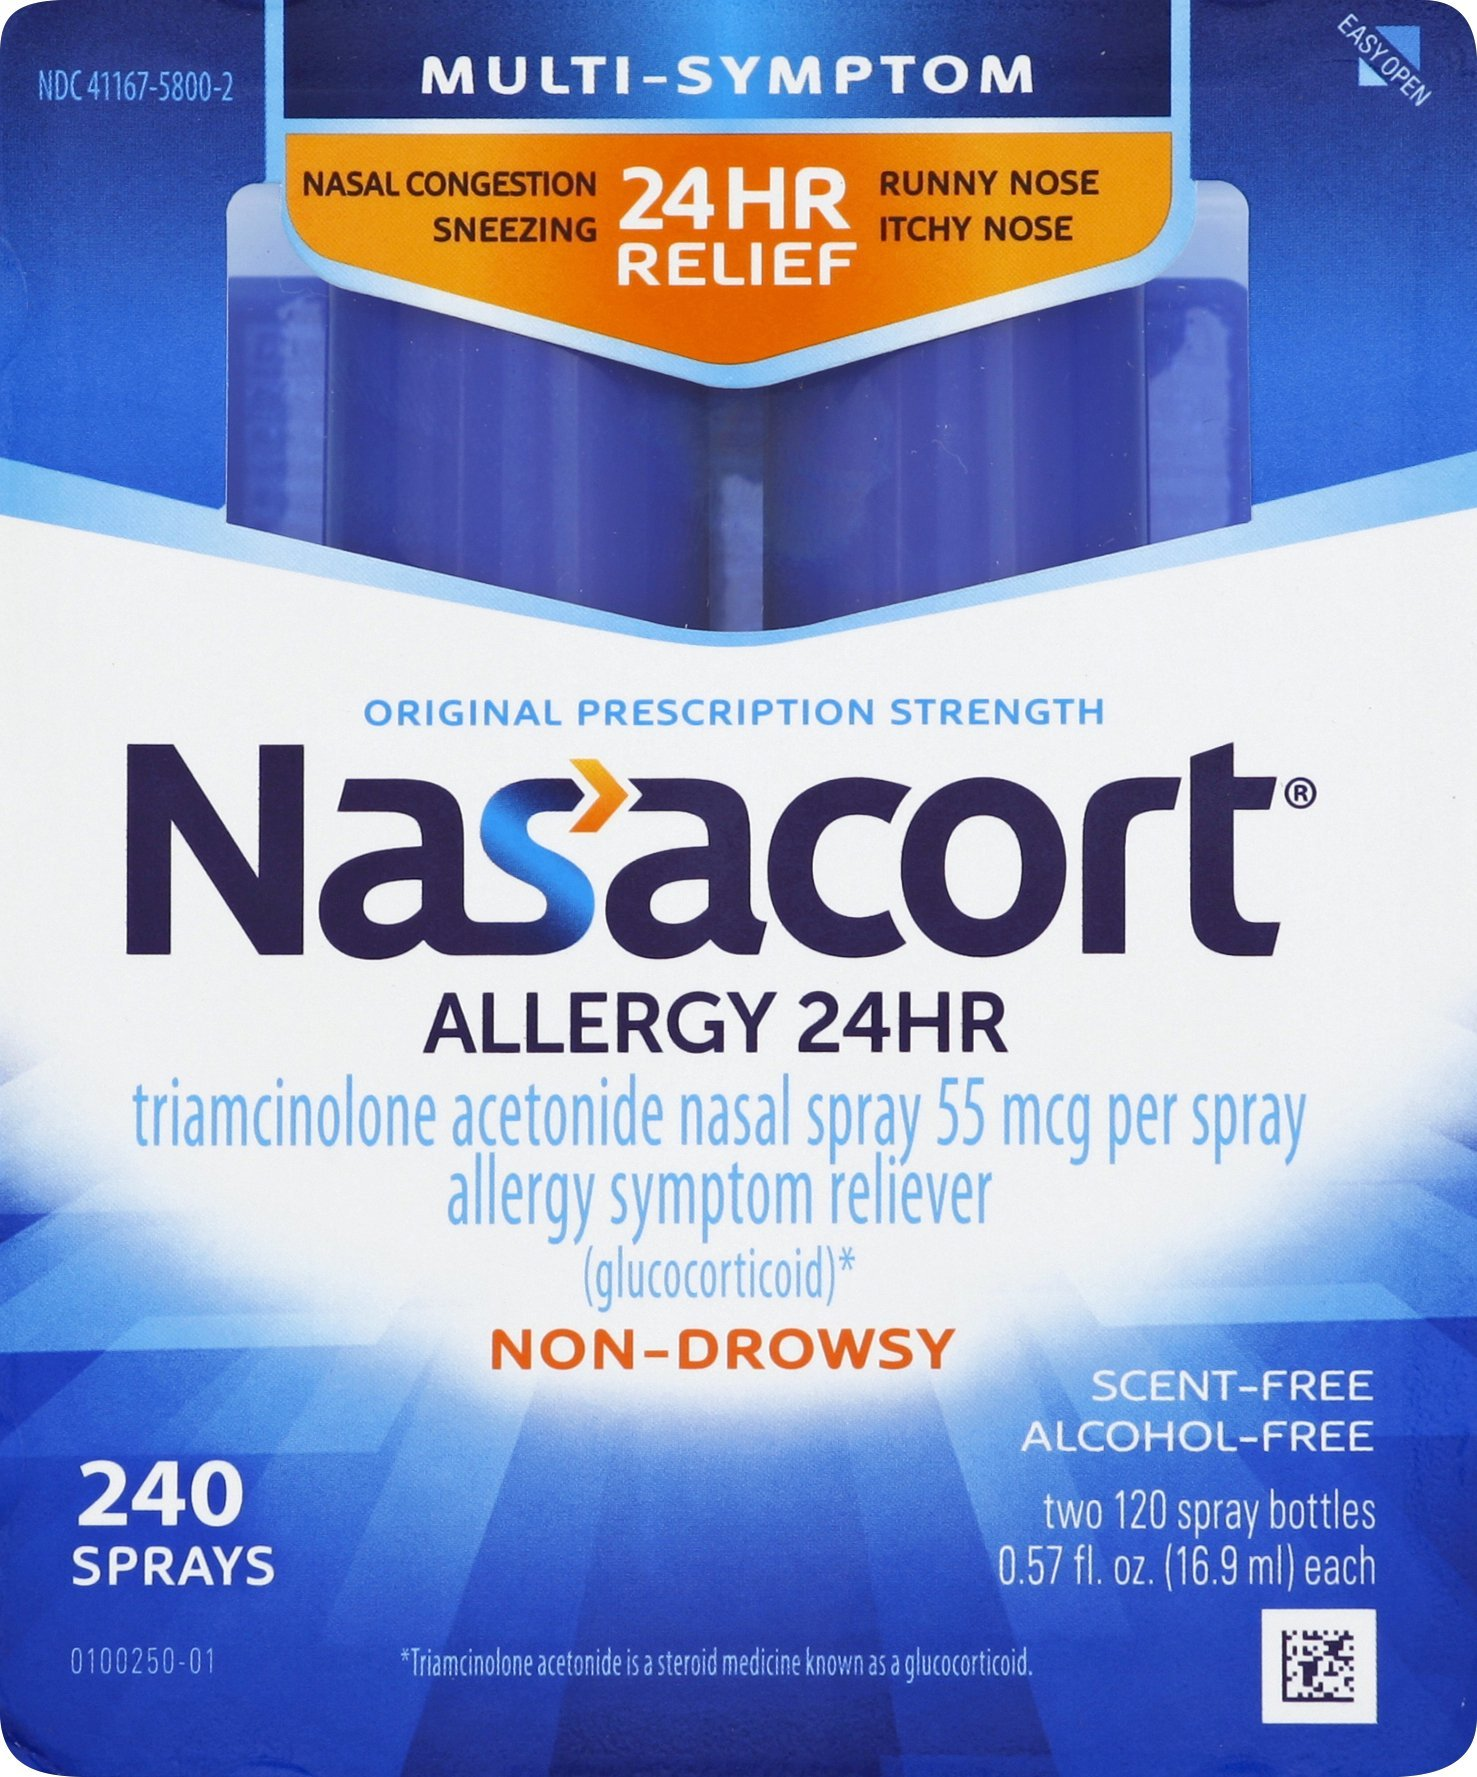 Nasacort Allergy 24 Hour Nasal Spray, Provides Relief for Allergy Symptoms Including Nasal Congestion, Sneezing, Runny Nose, Itchy Nose, Alcohol and Scent Free Nasal Spray, 0.57 Fl Oz, Pack of 2 by Nasacort